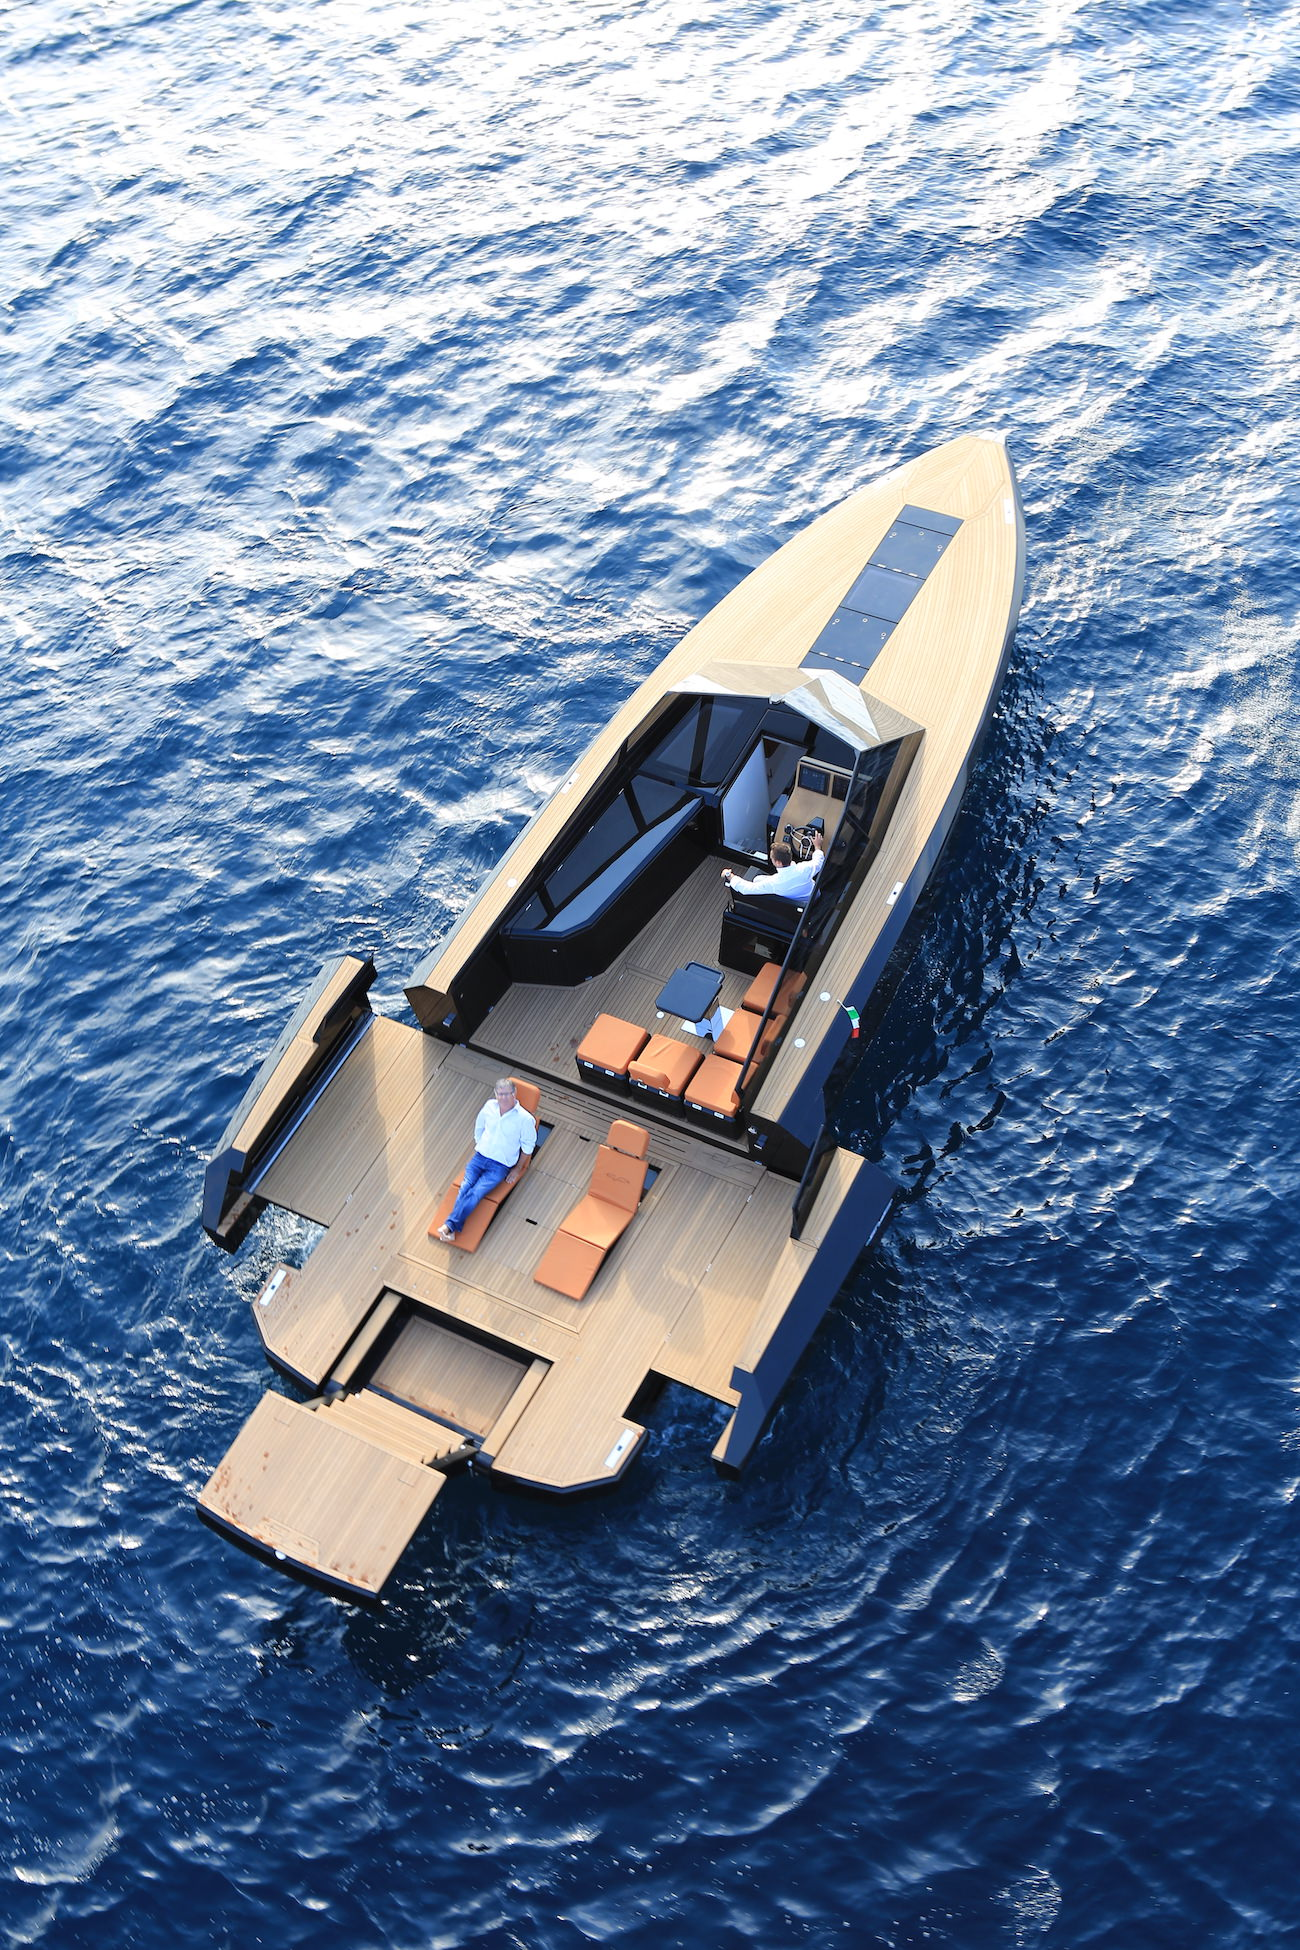 43 Best Images About Nails On Pinterest: Evo 43: Evo Brand's First Promising Yacht Representing 13m